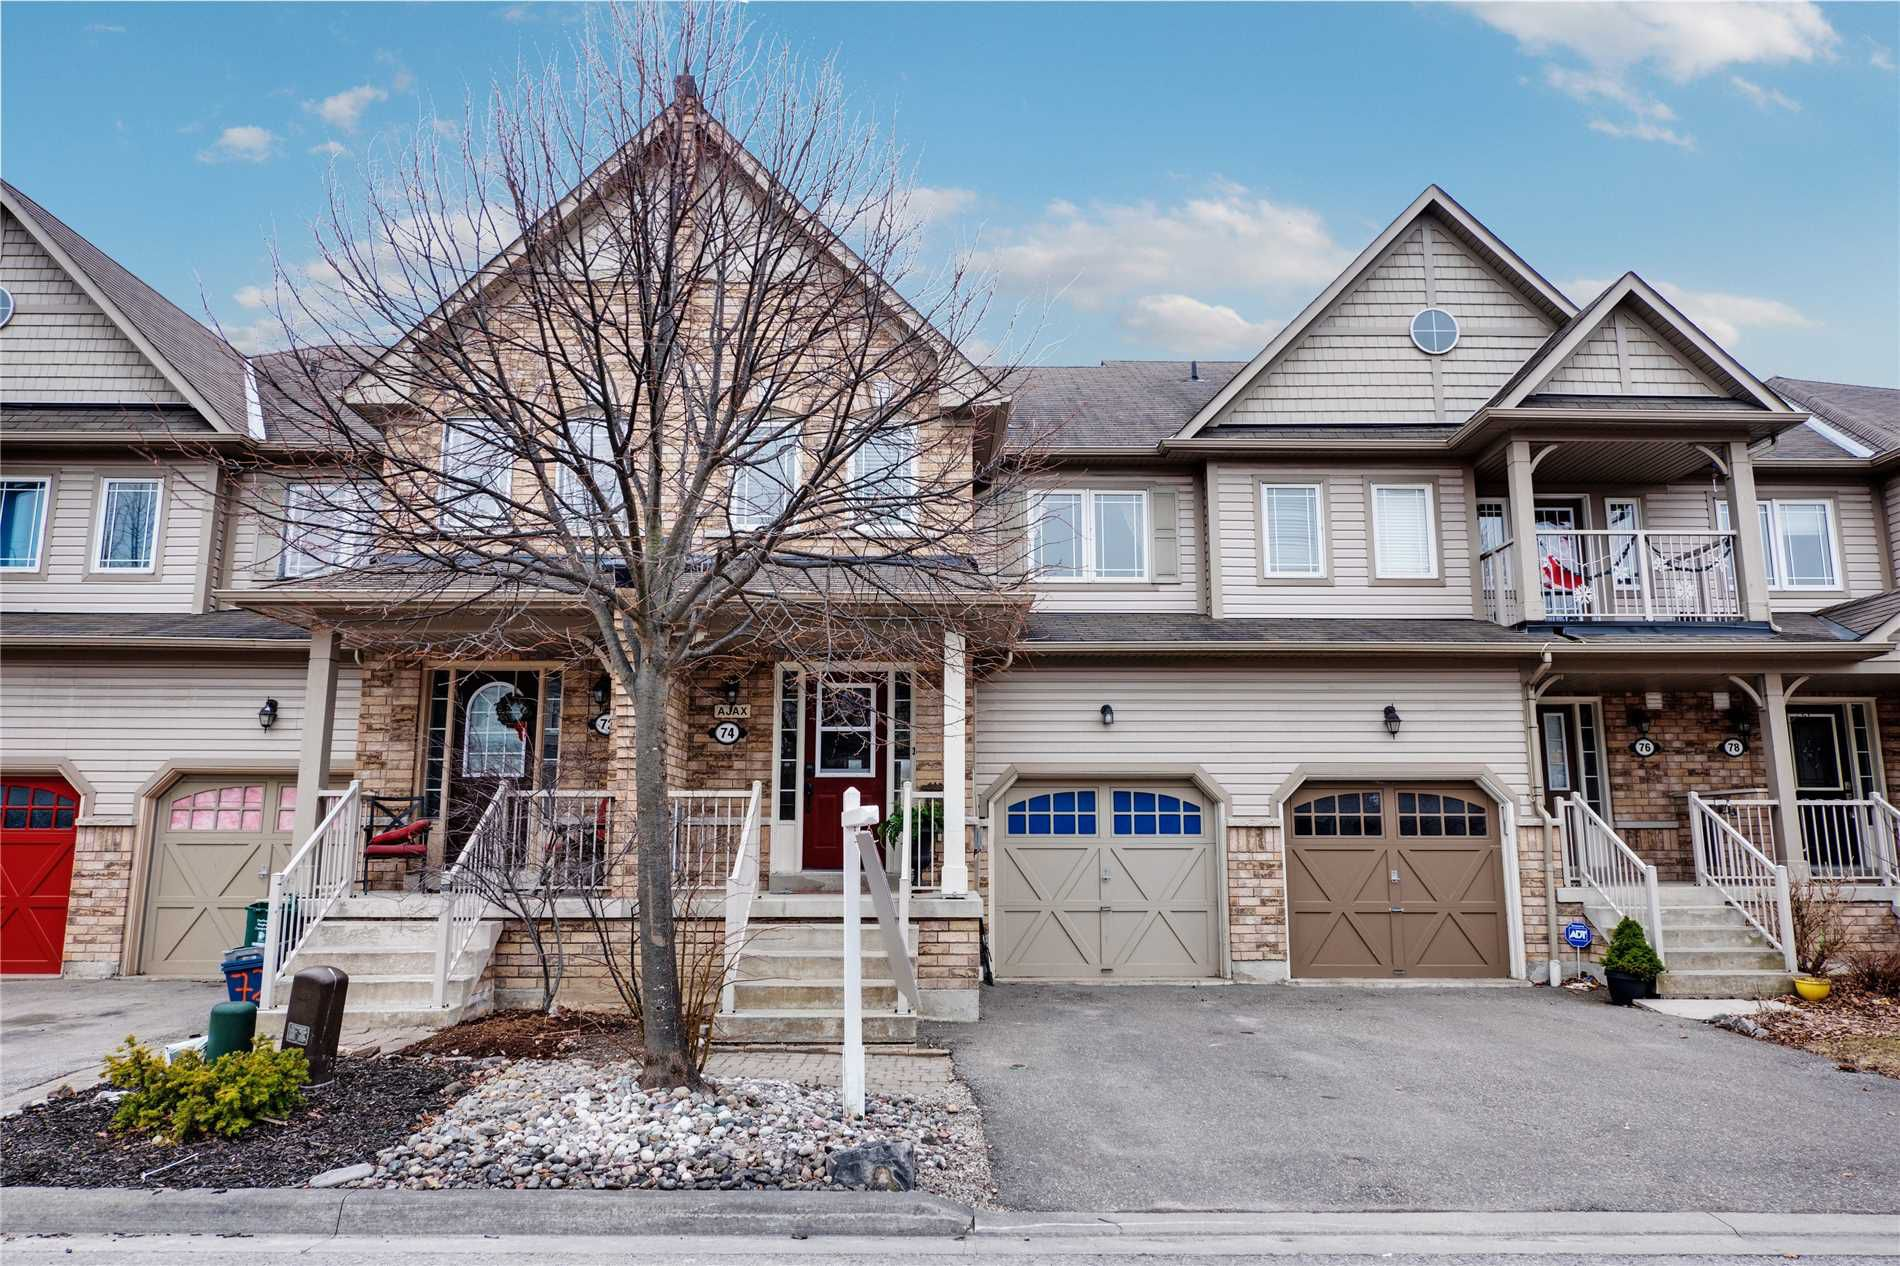 Main Photo: 74 Whitefoot Crescent in Ajax: South East House (2-Storey) for sale : MLS®# E4413541